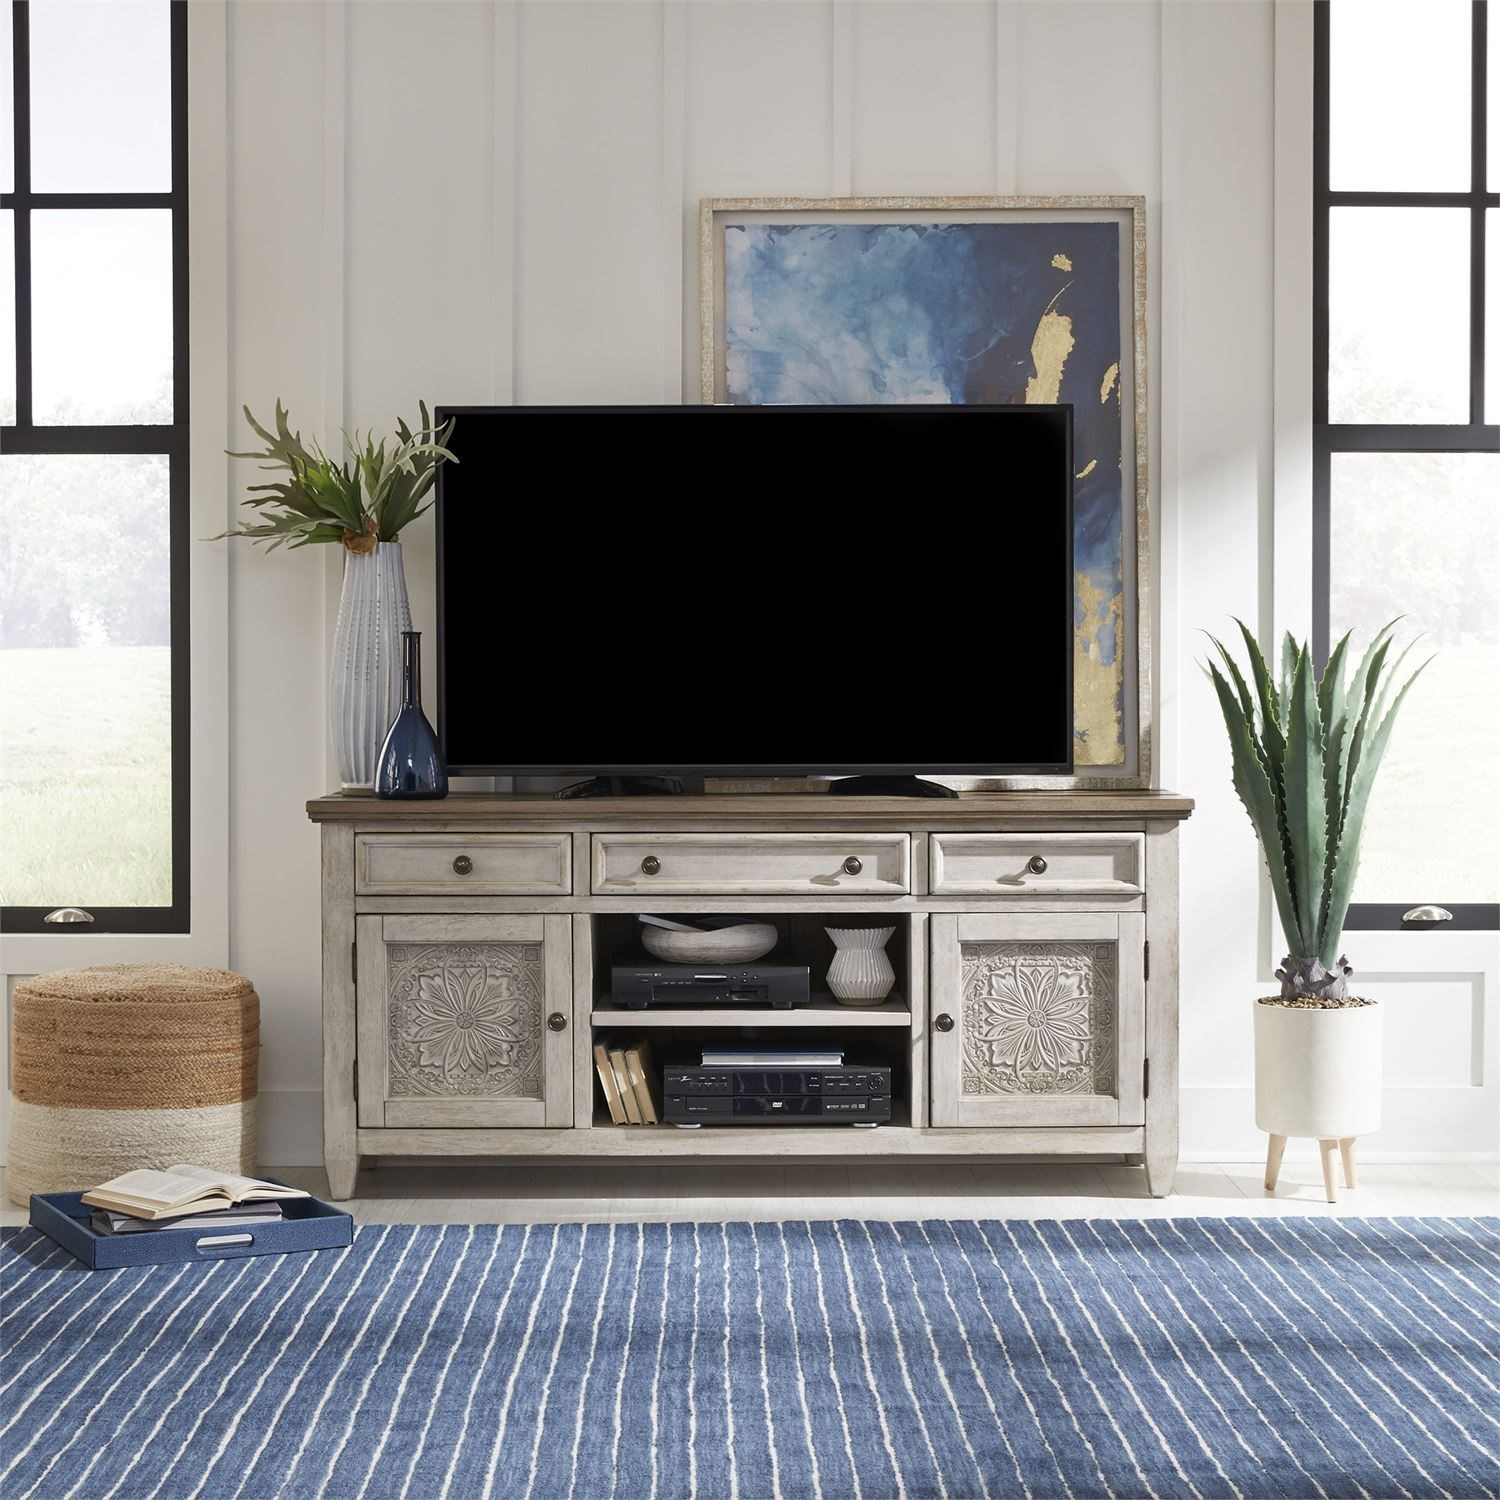 Heartland 66 Inch Tile TV Console by Liberty Furniture at Northeast Factory Direct